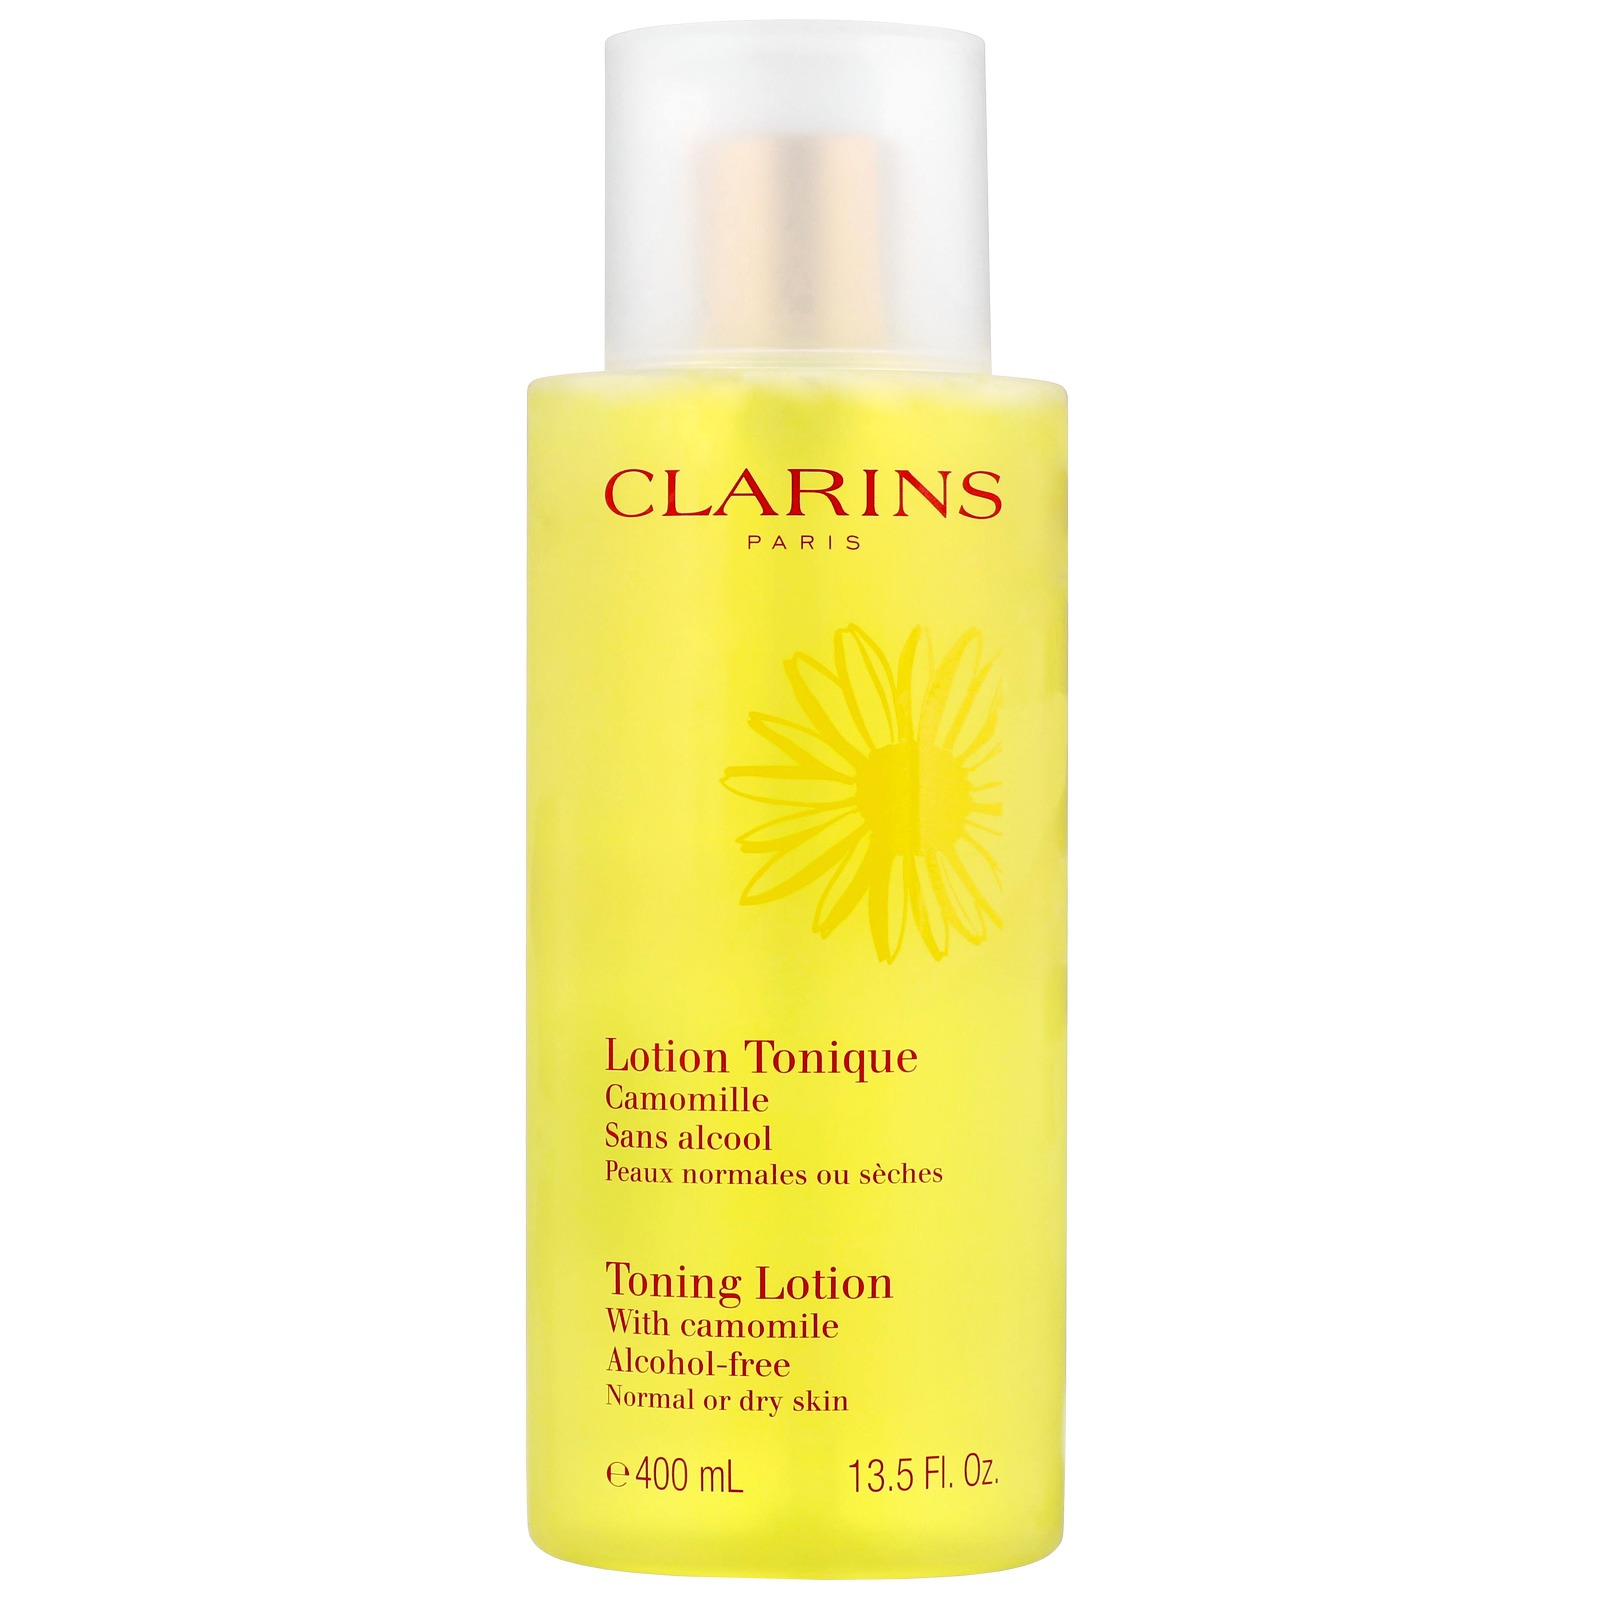 Clarins Cleansers & Toners Toning Lotion With Camomile Alcohol-Free Normal/Dry Skin 400ml / 13.5 fl.oz.